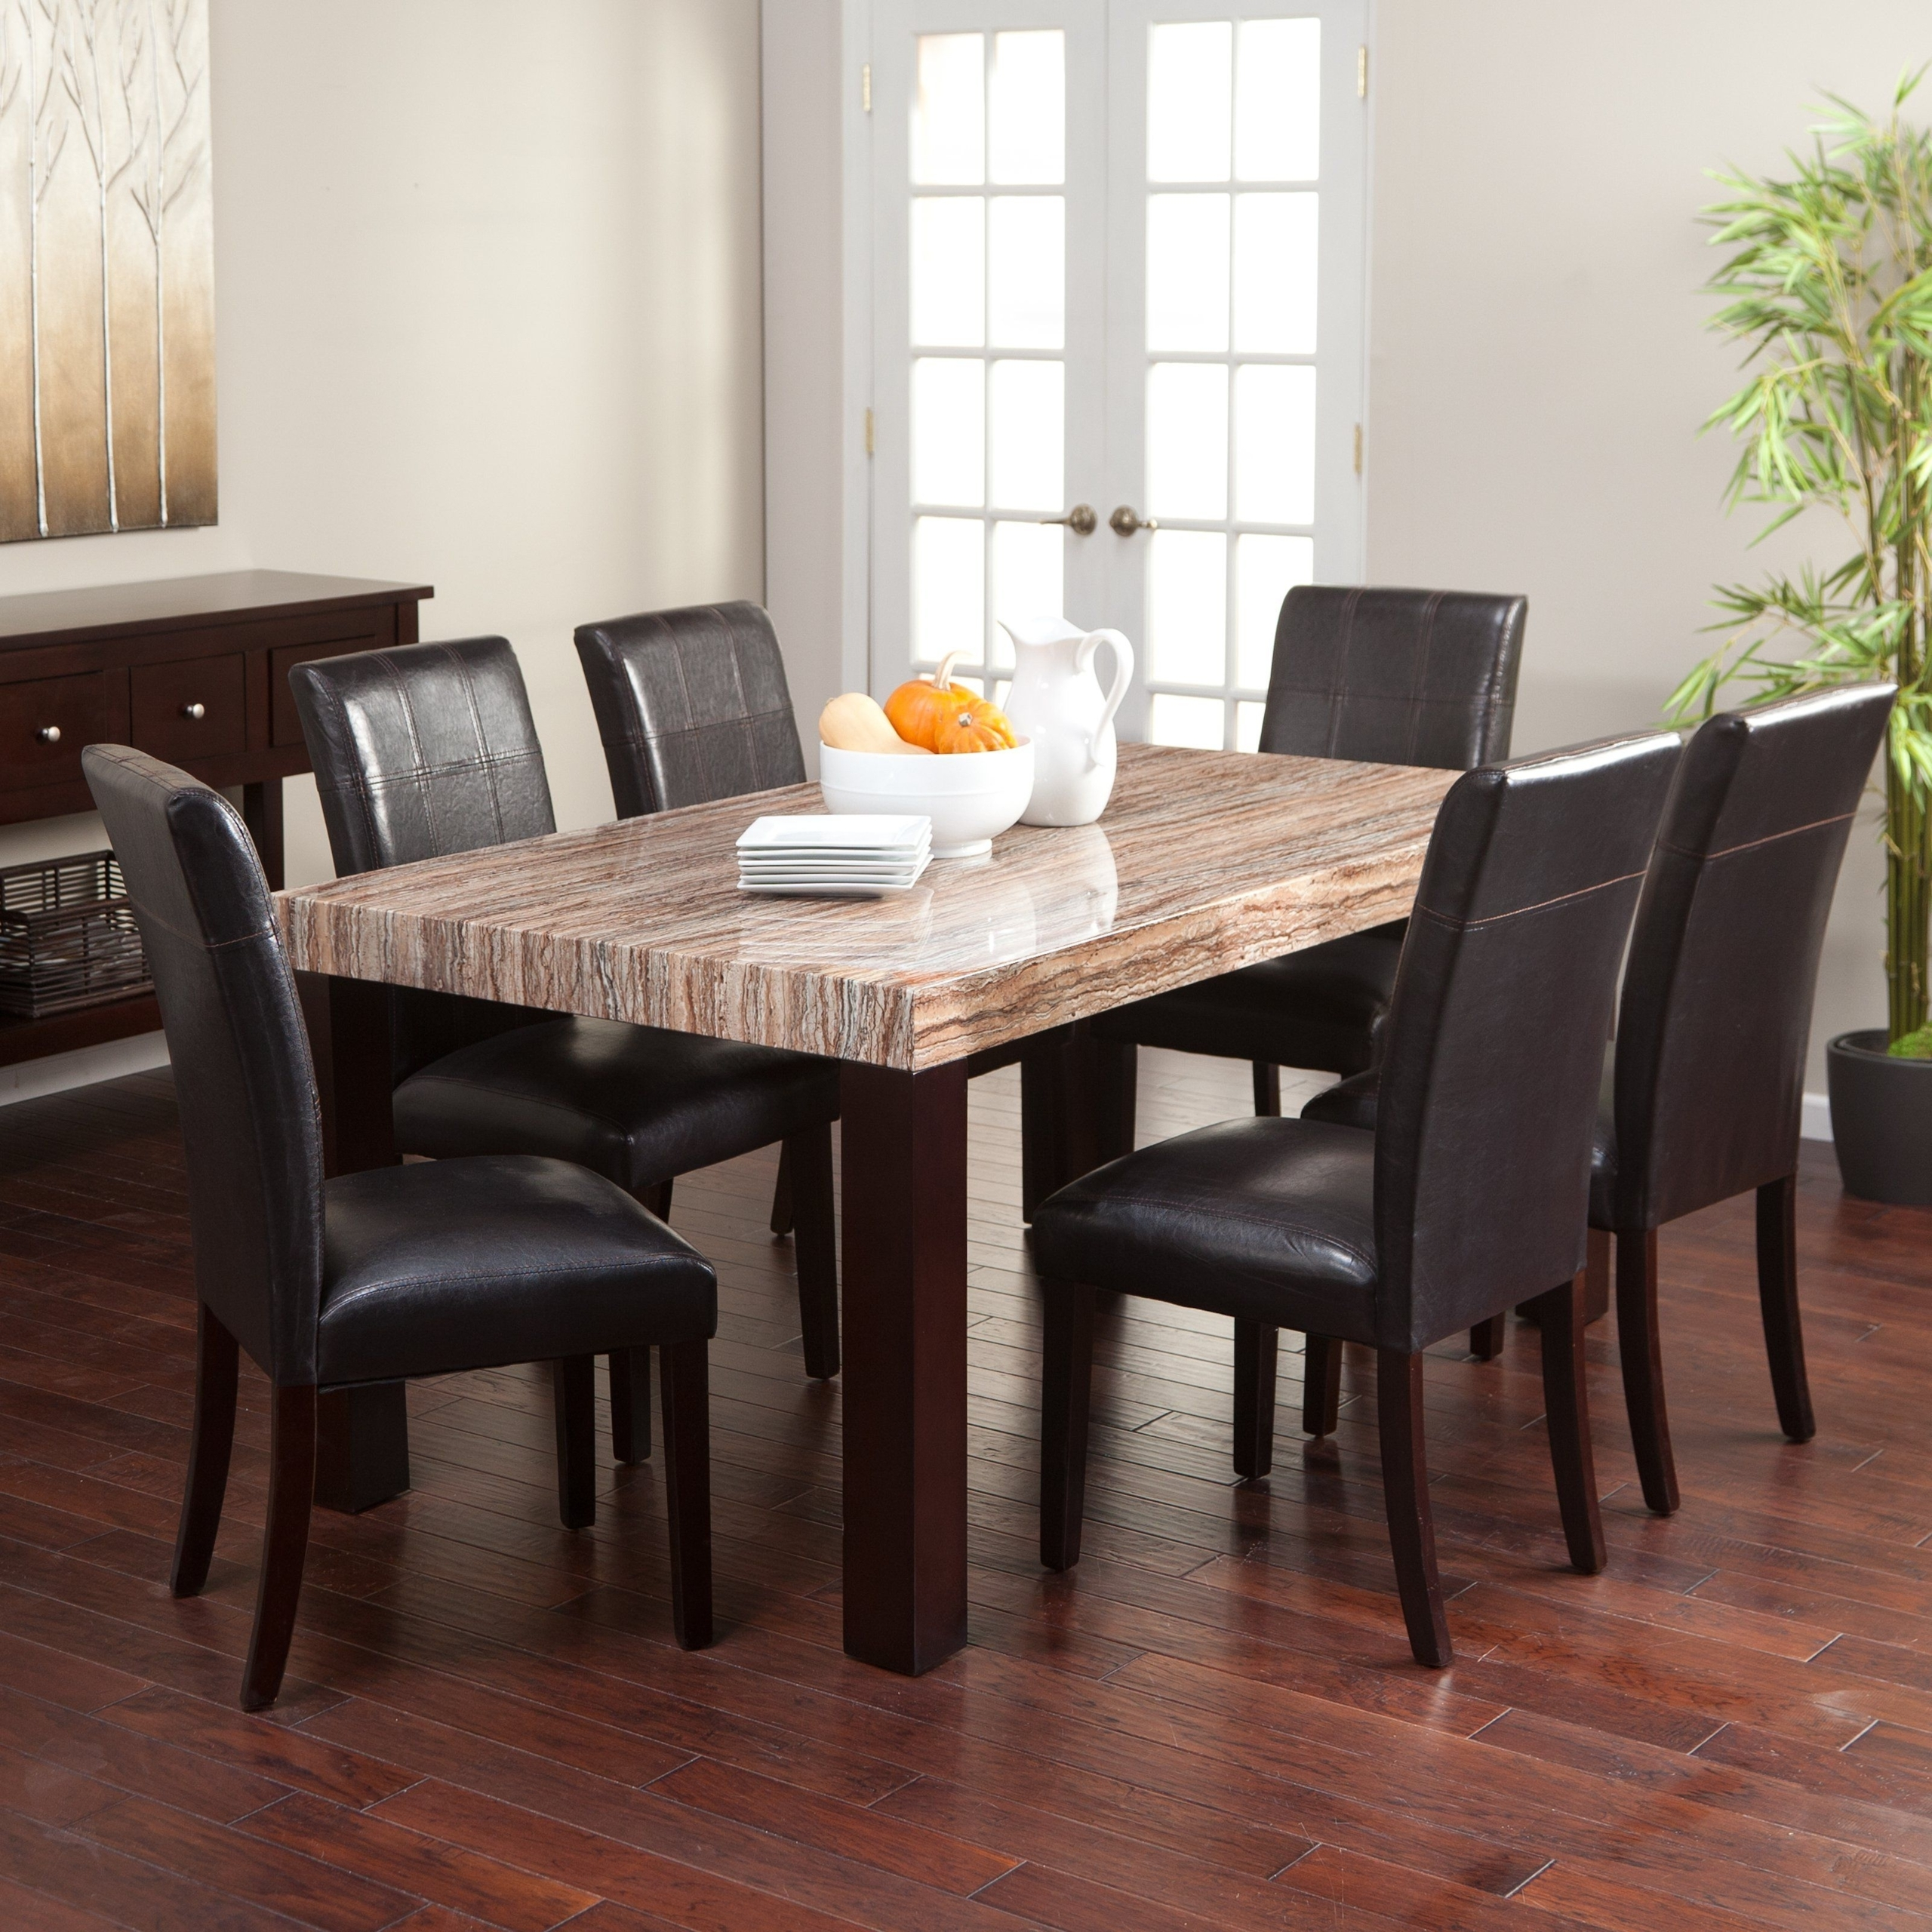 Beautiful 7 Piece Dining Room Table Set With Black Leather Chairs And Faux  Marble Top Dinner